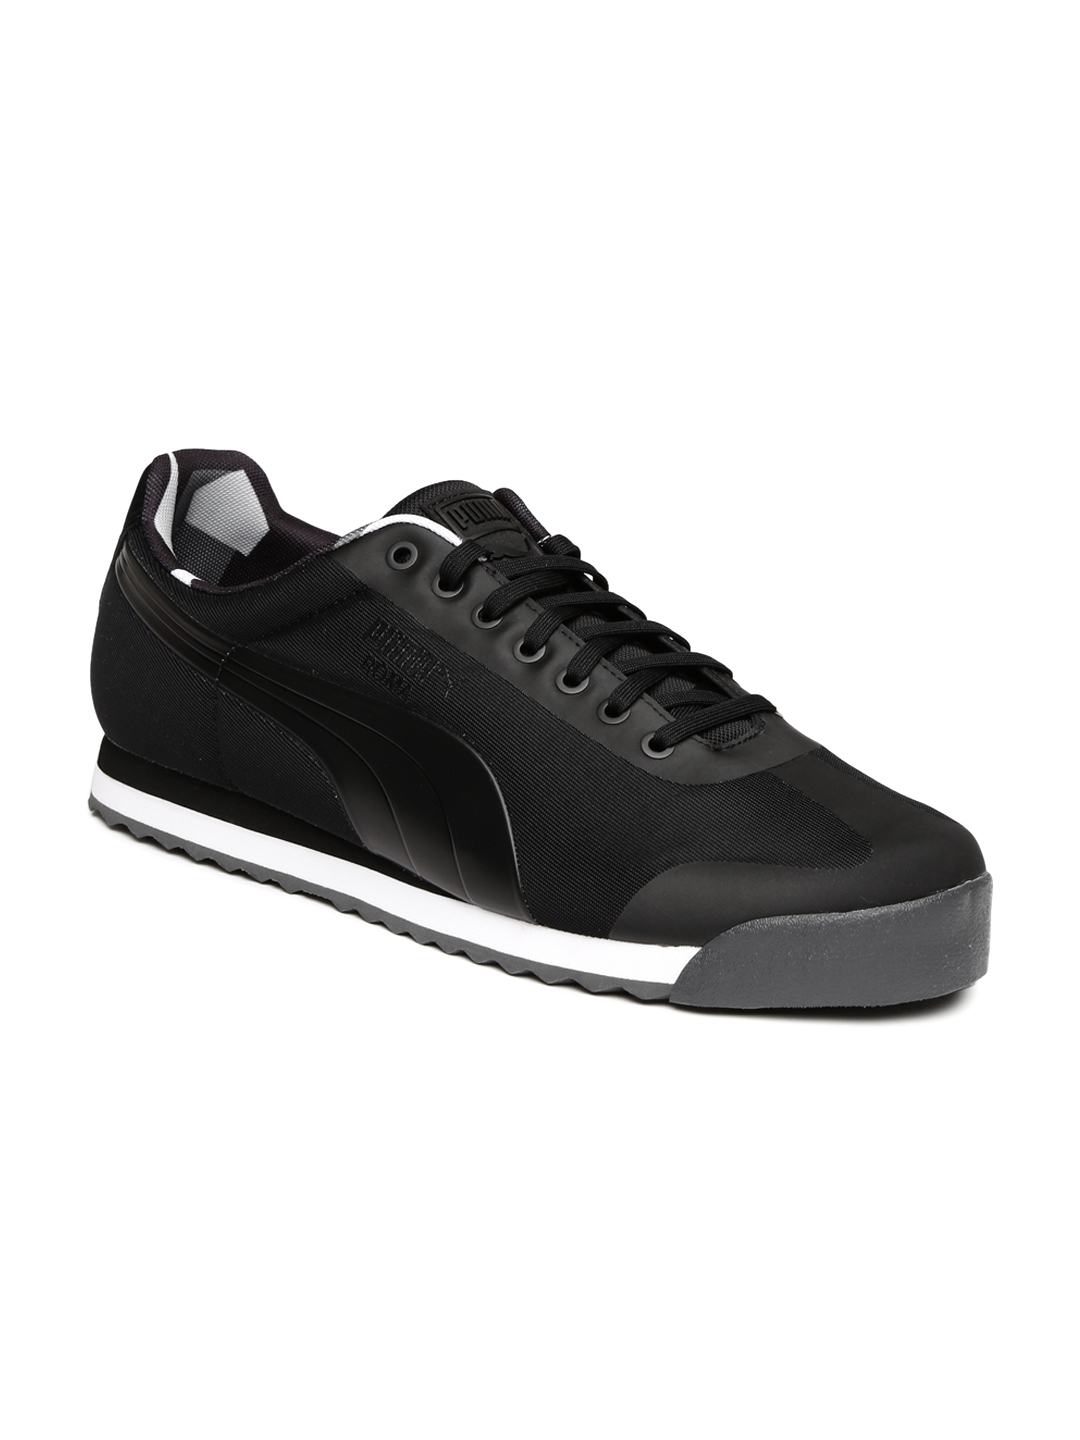 Buy Puma Men Black Solid Roma Basic Geometric Camo Regular Sneakers ... 8401ec8ed